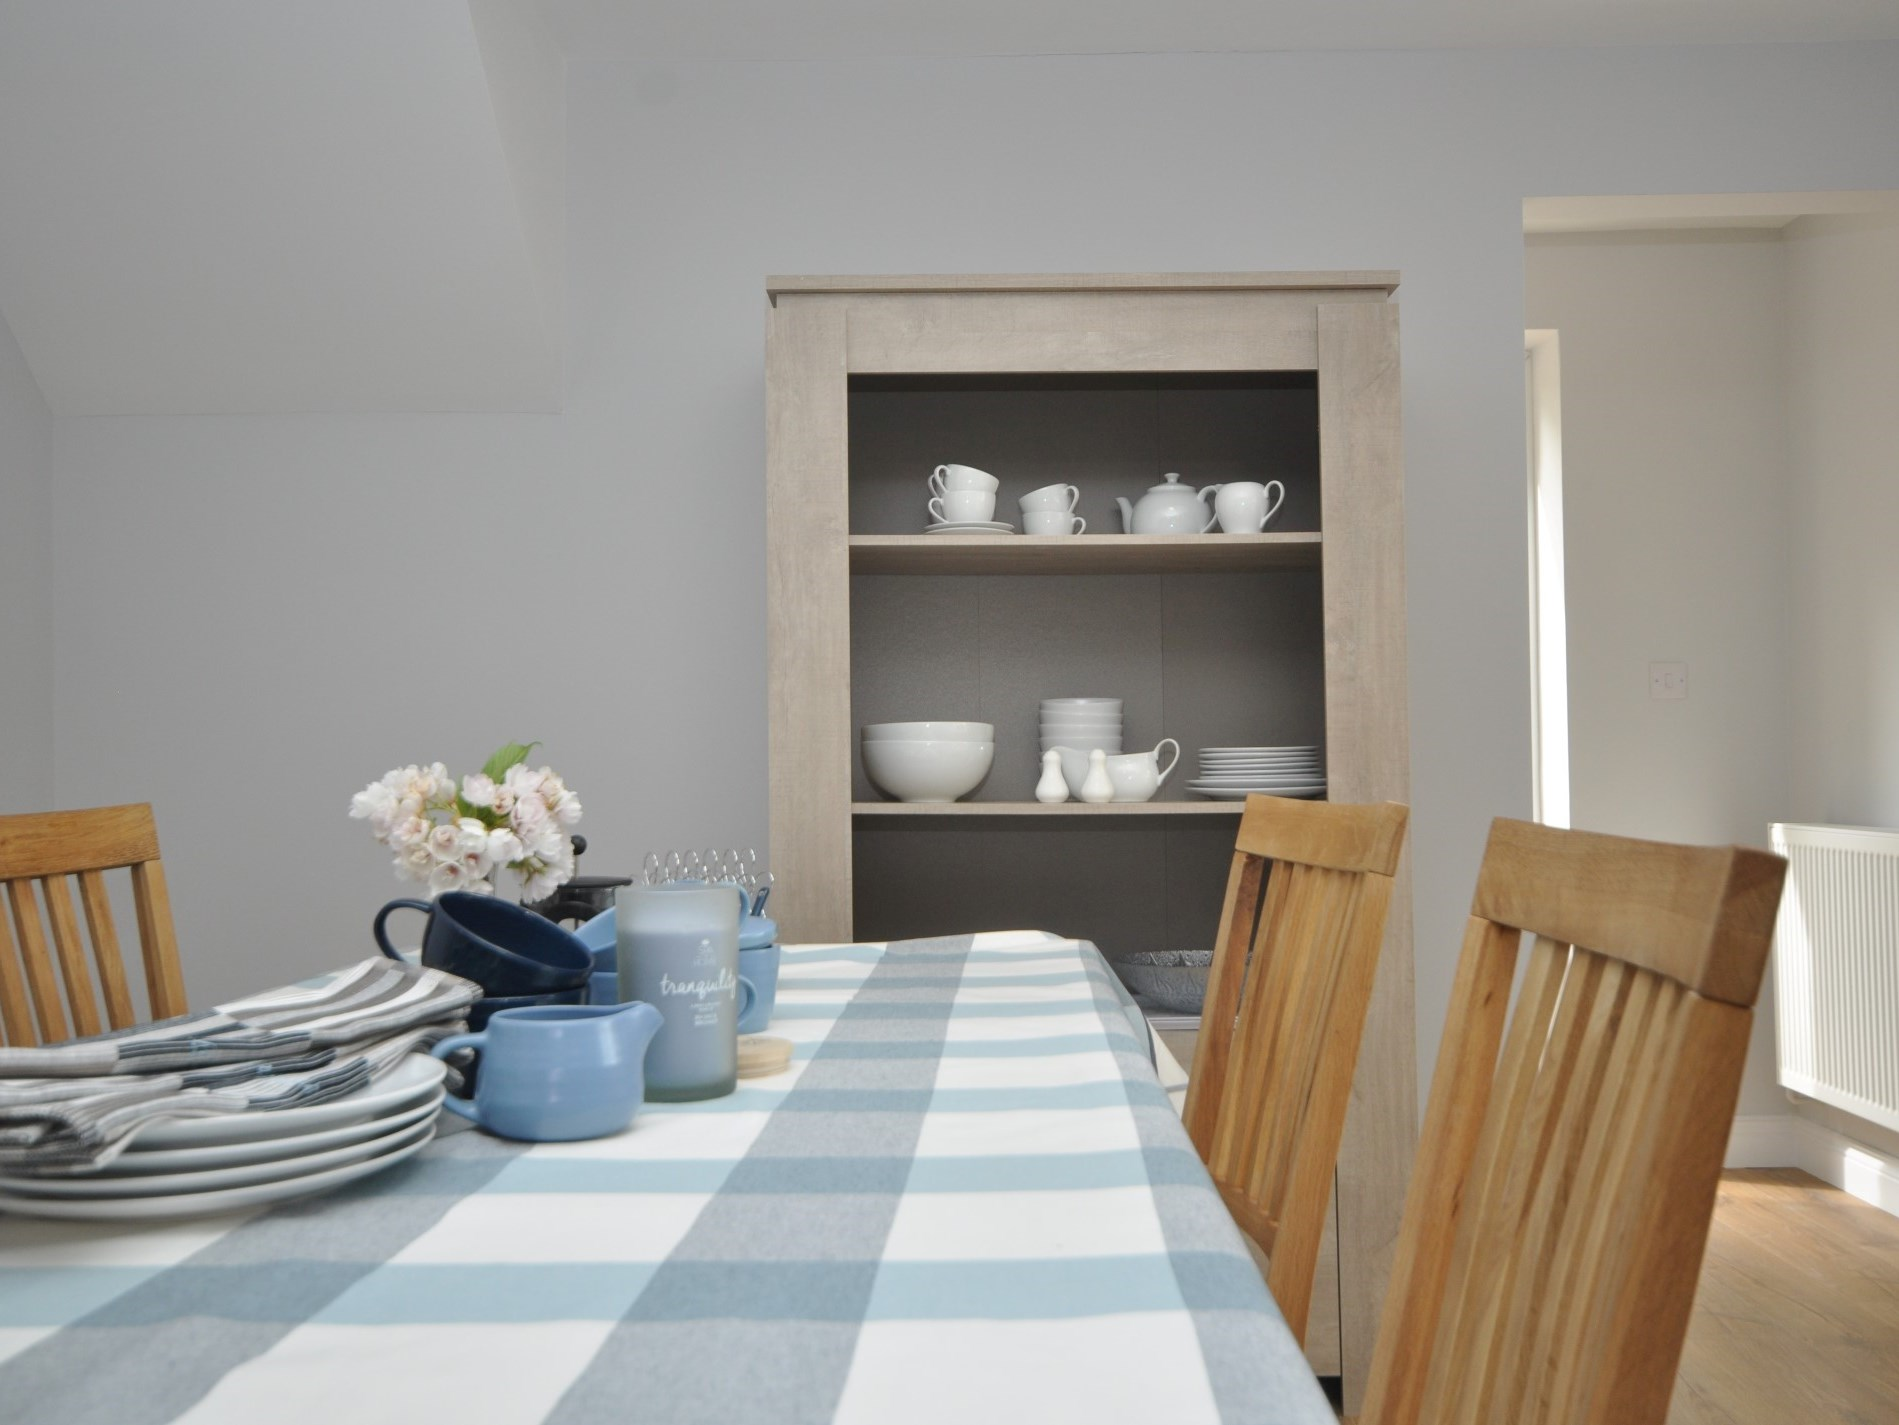 The open dresser is well stocked with simple white china